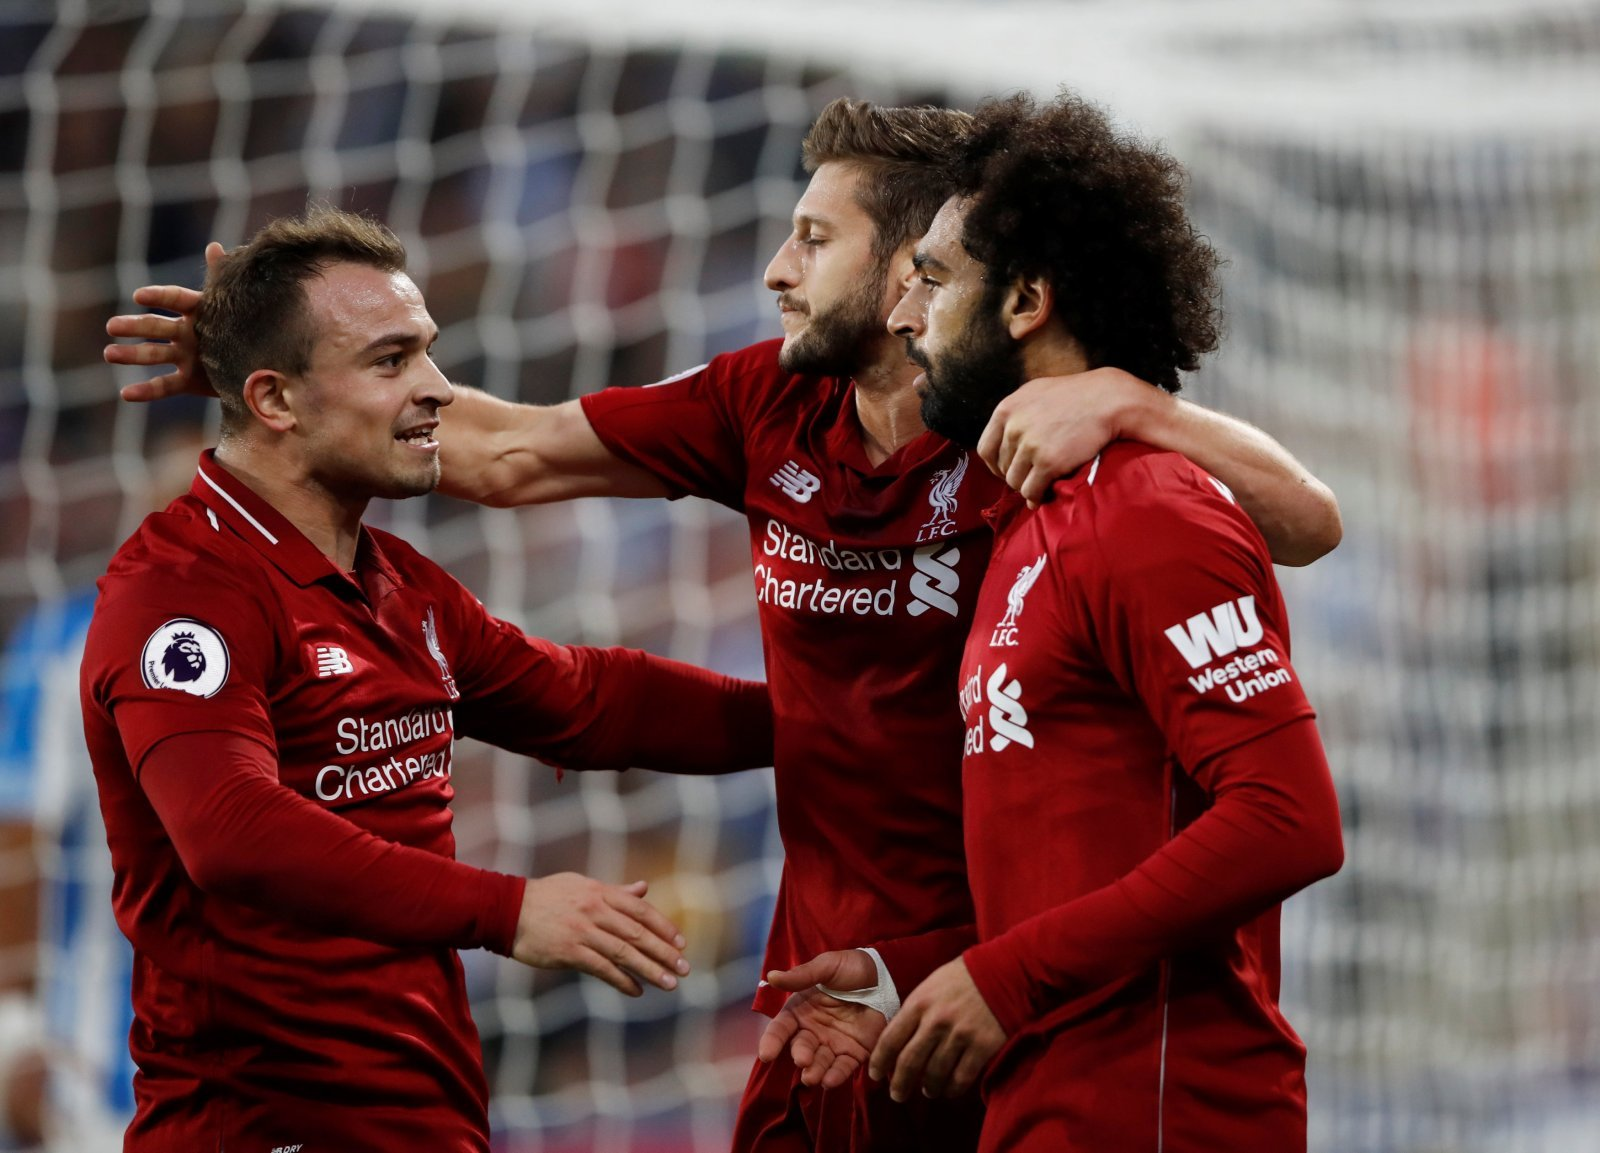 Introducing: Shaqiri as the man who can get the best out of Mohamed Salah